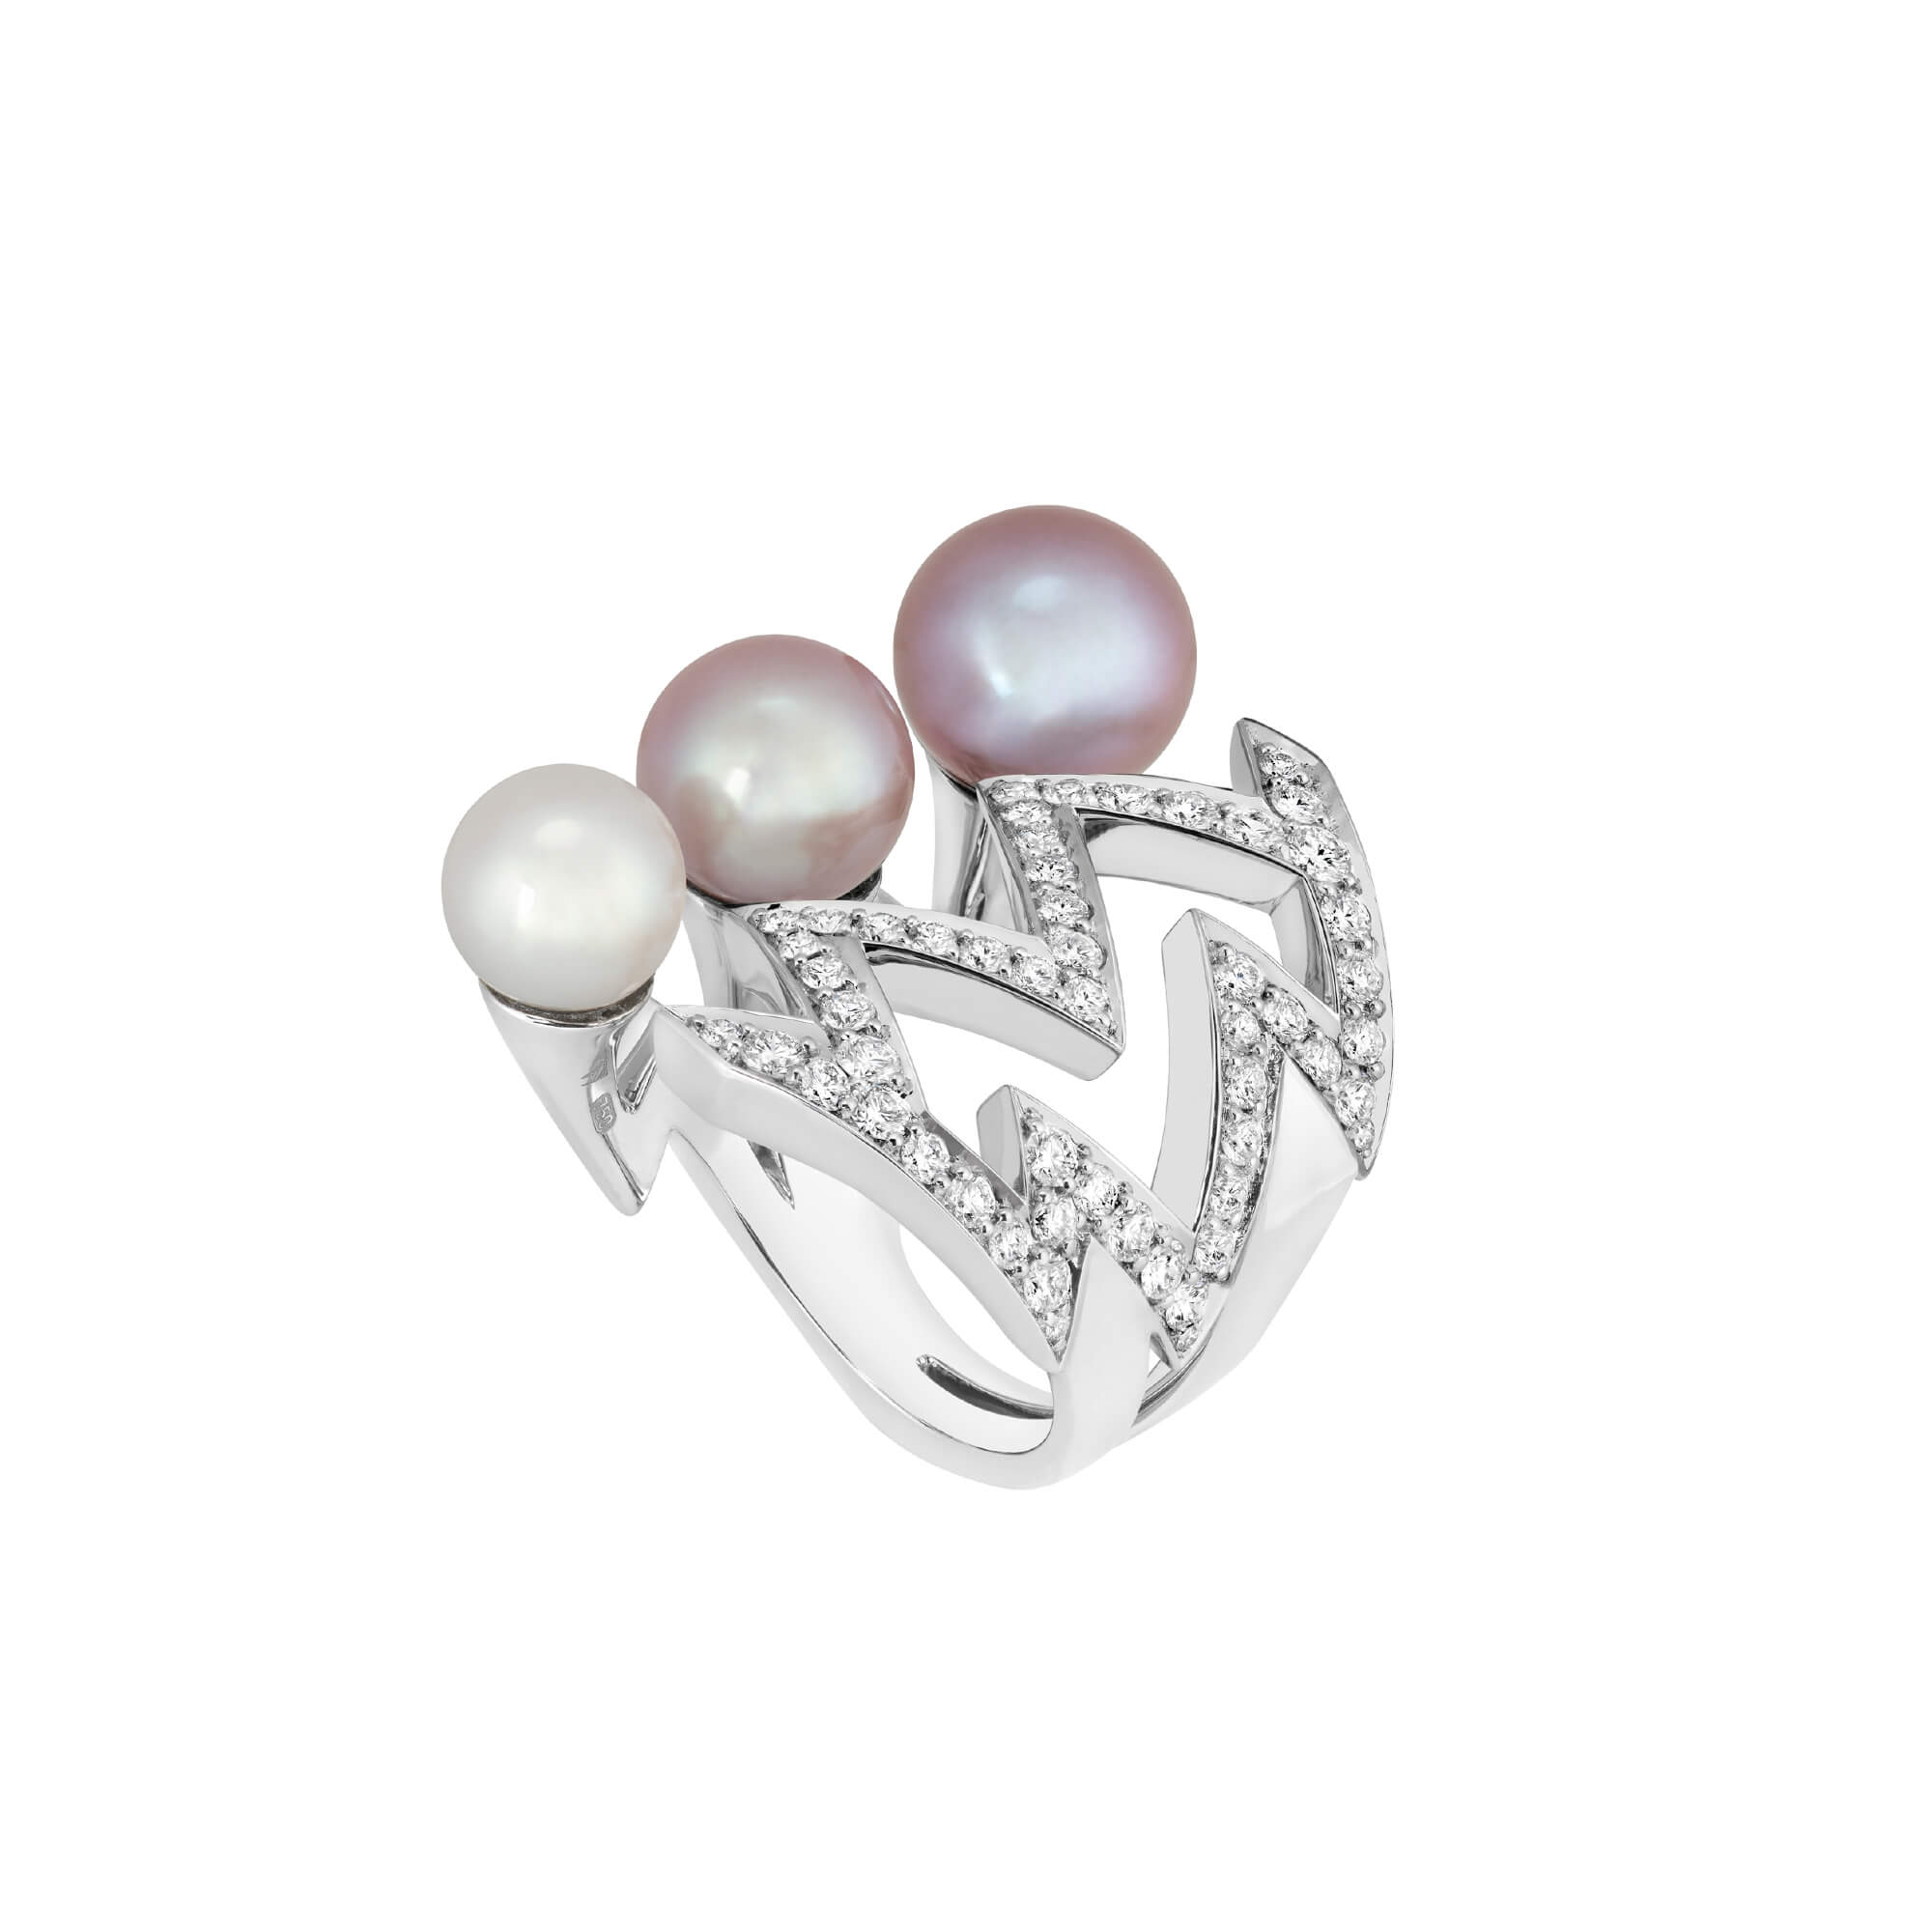 White and Pink Graduating Pearl Bolt Ring | Lady Stardust